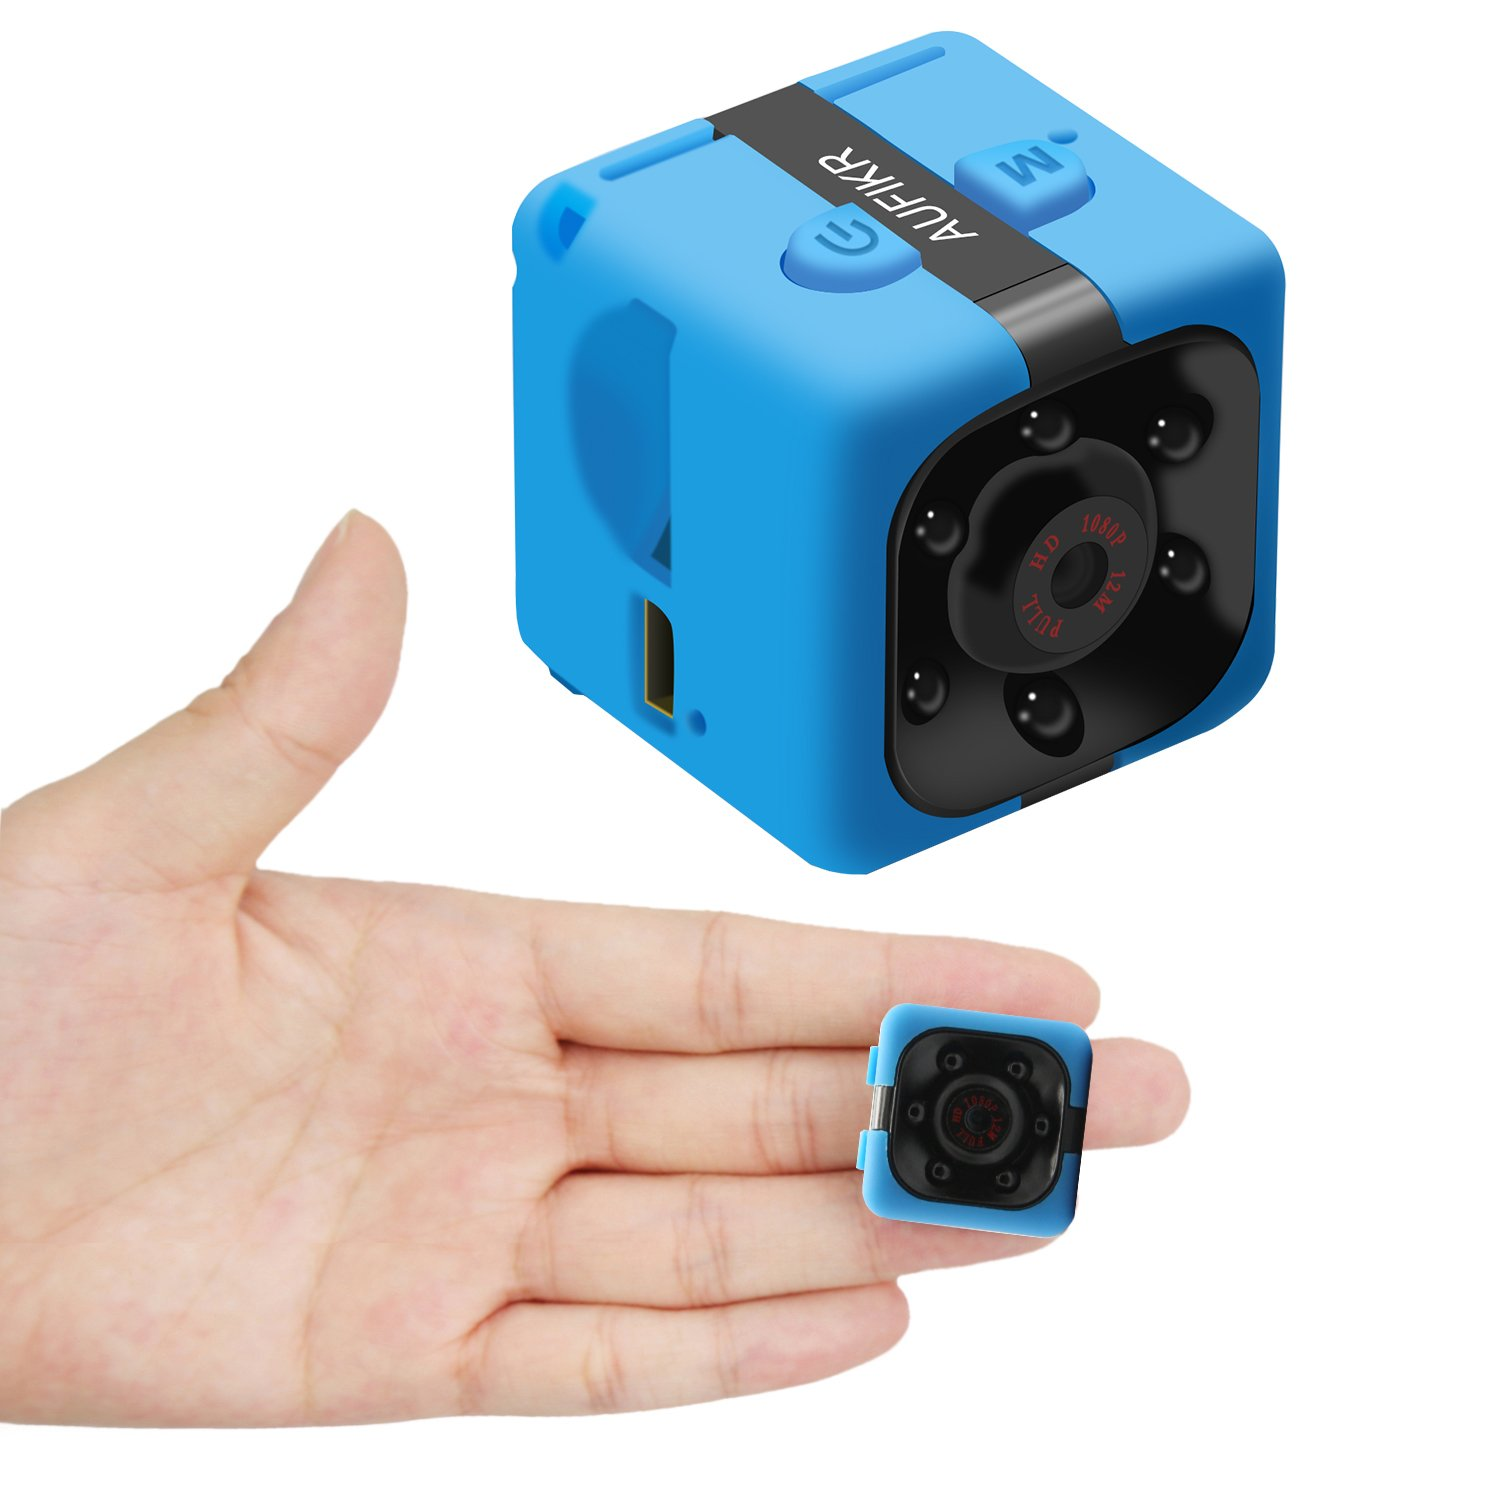 Aufikr Mini Camera Sports HD DV Camera 1080P Portable Tiny Video Sound Camera with IR Night Vision & Motion Detection, Small Nanny Camera - Blue by Aufikr